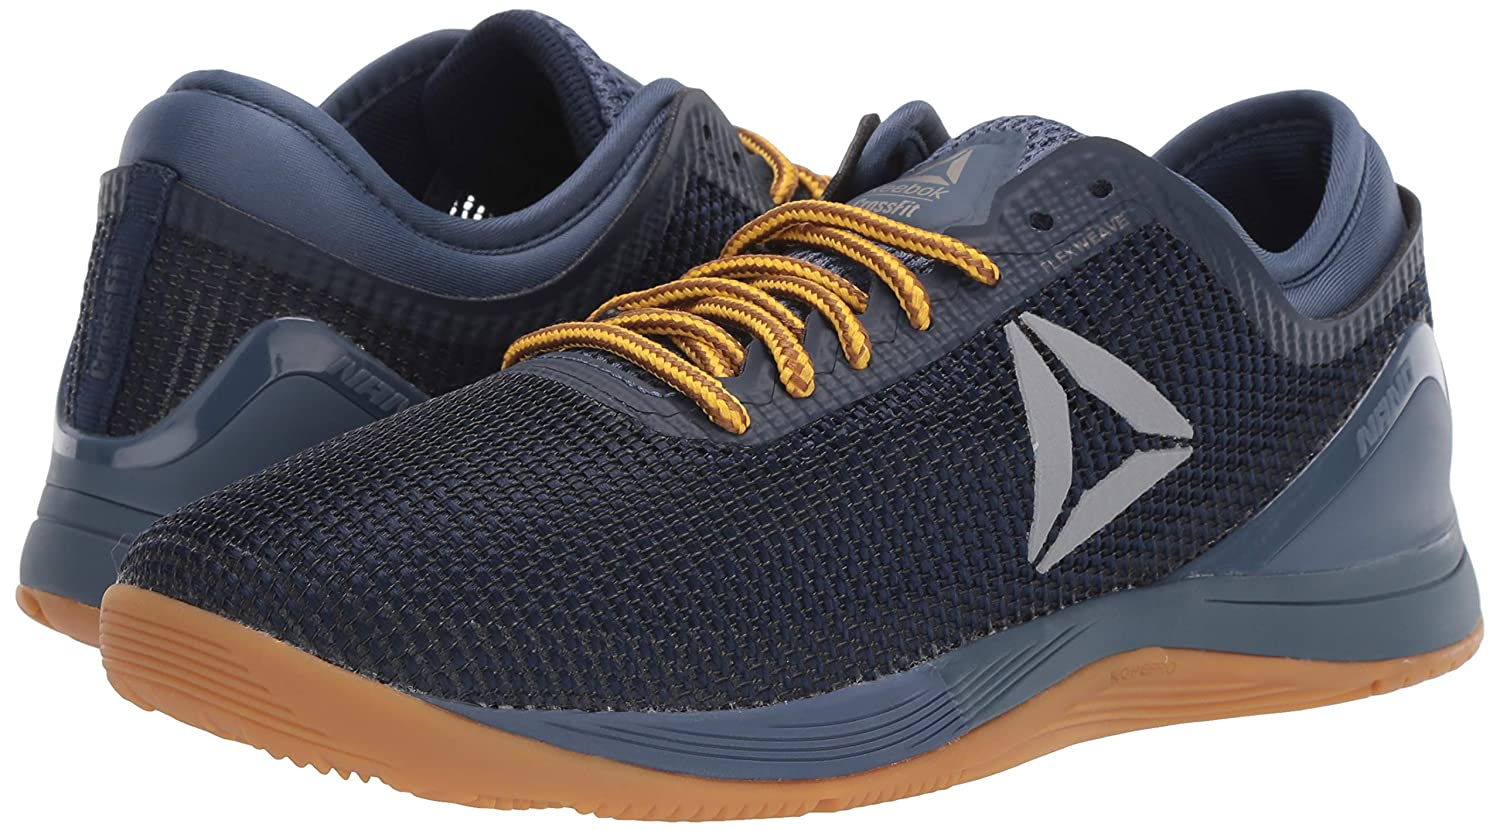 0ee5bec4 Reebok Men's Crossfit Nano 8.0 Flexweave Cross Trainer,  Navy/Royal/Black/Pewter/Gum, 11 M US